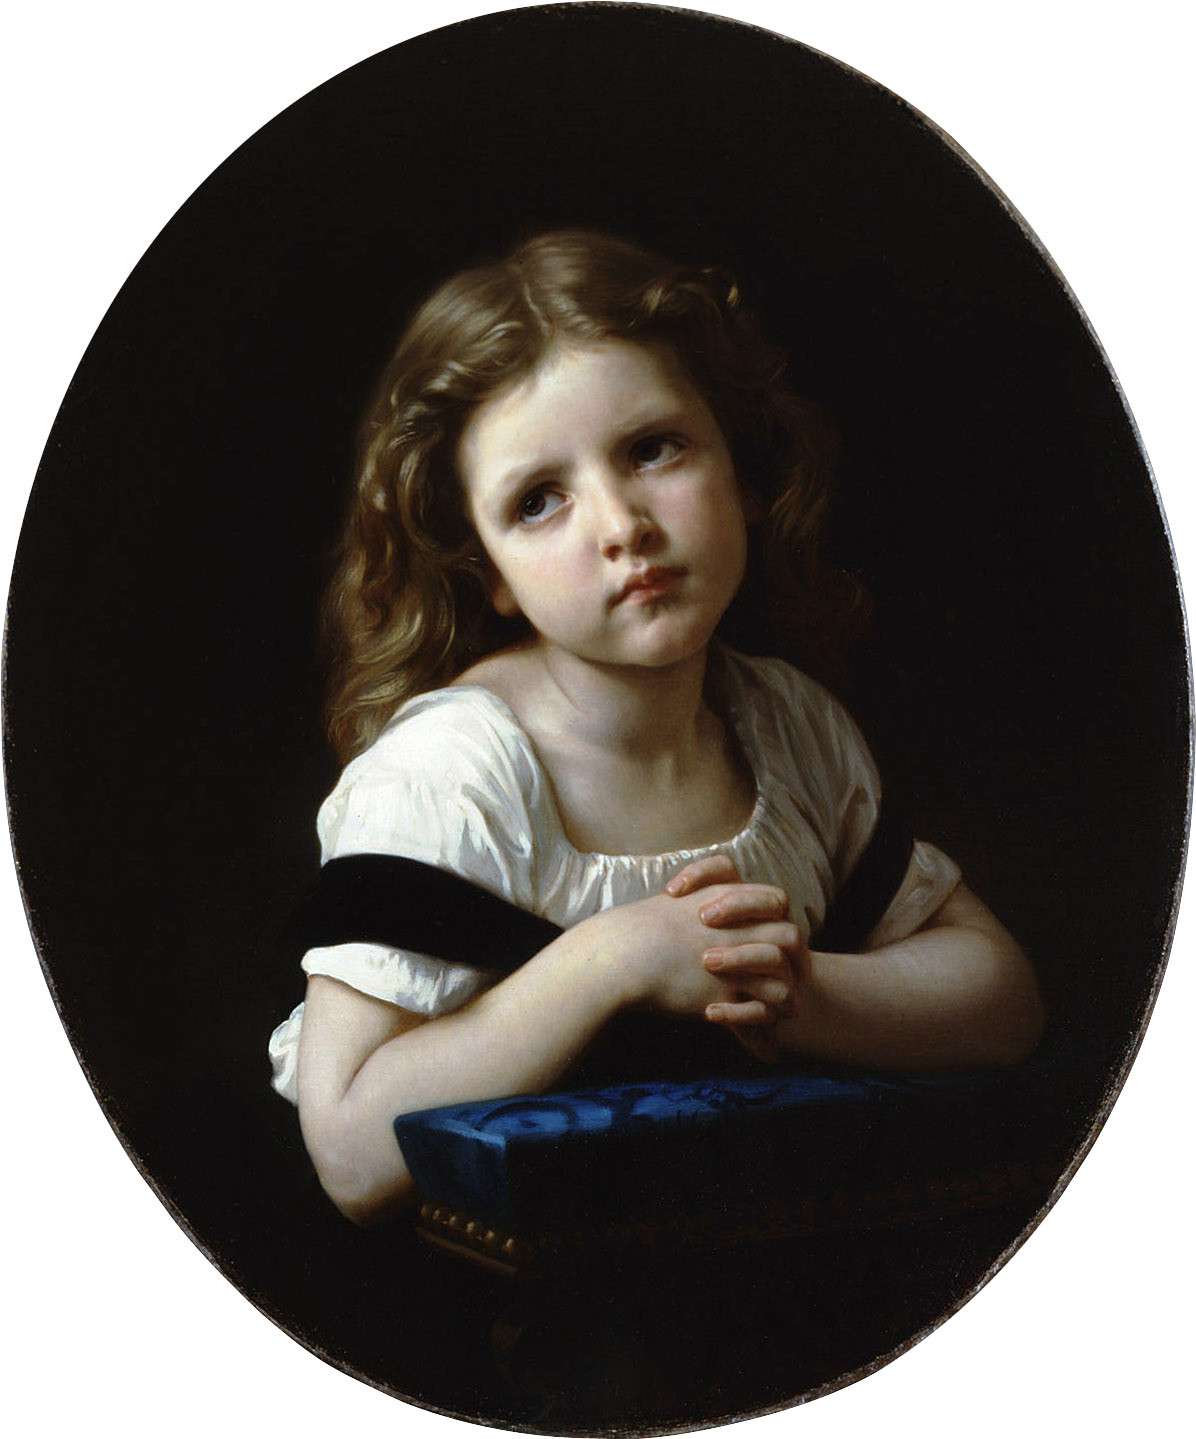 http://upload.wikimedia.org/wikipedia/commons/a/aa/William-Adolphe_Bouguereau_(1825-1905)_-_The_Prayer_(1865).jpg